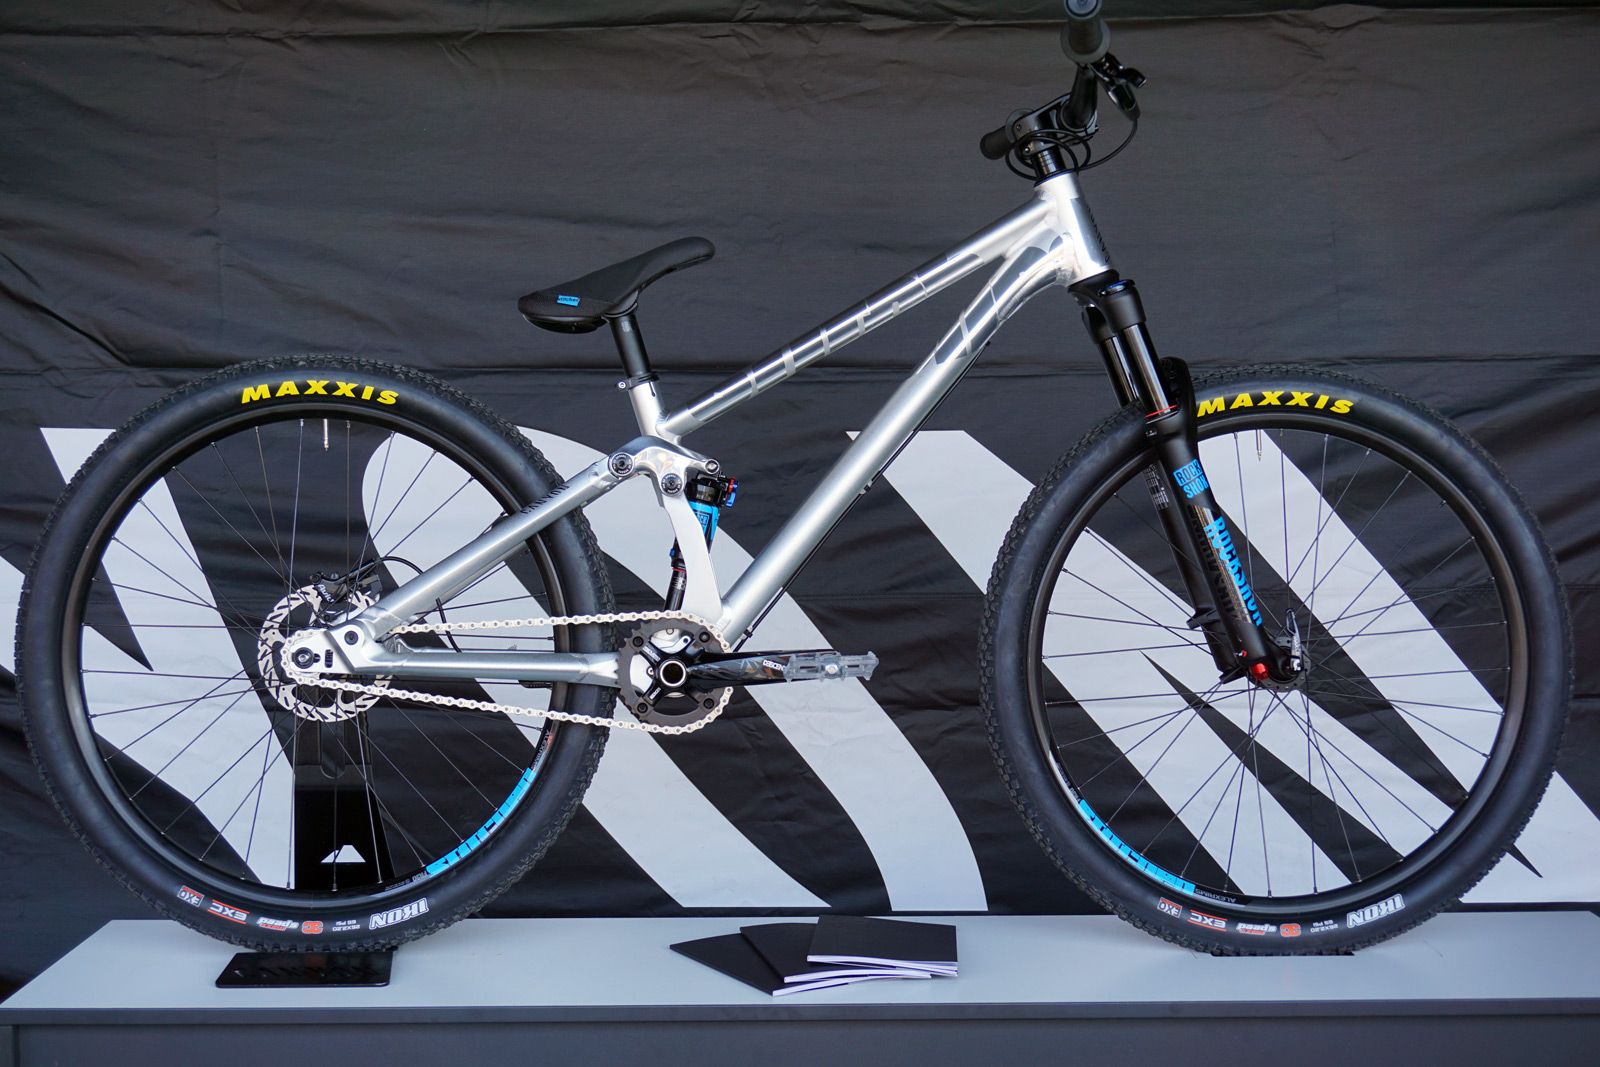 Canyon_Stitched-720_aluminum-100mm-full-suspension-singlespeed-slopestyle-mountain-bike_complete